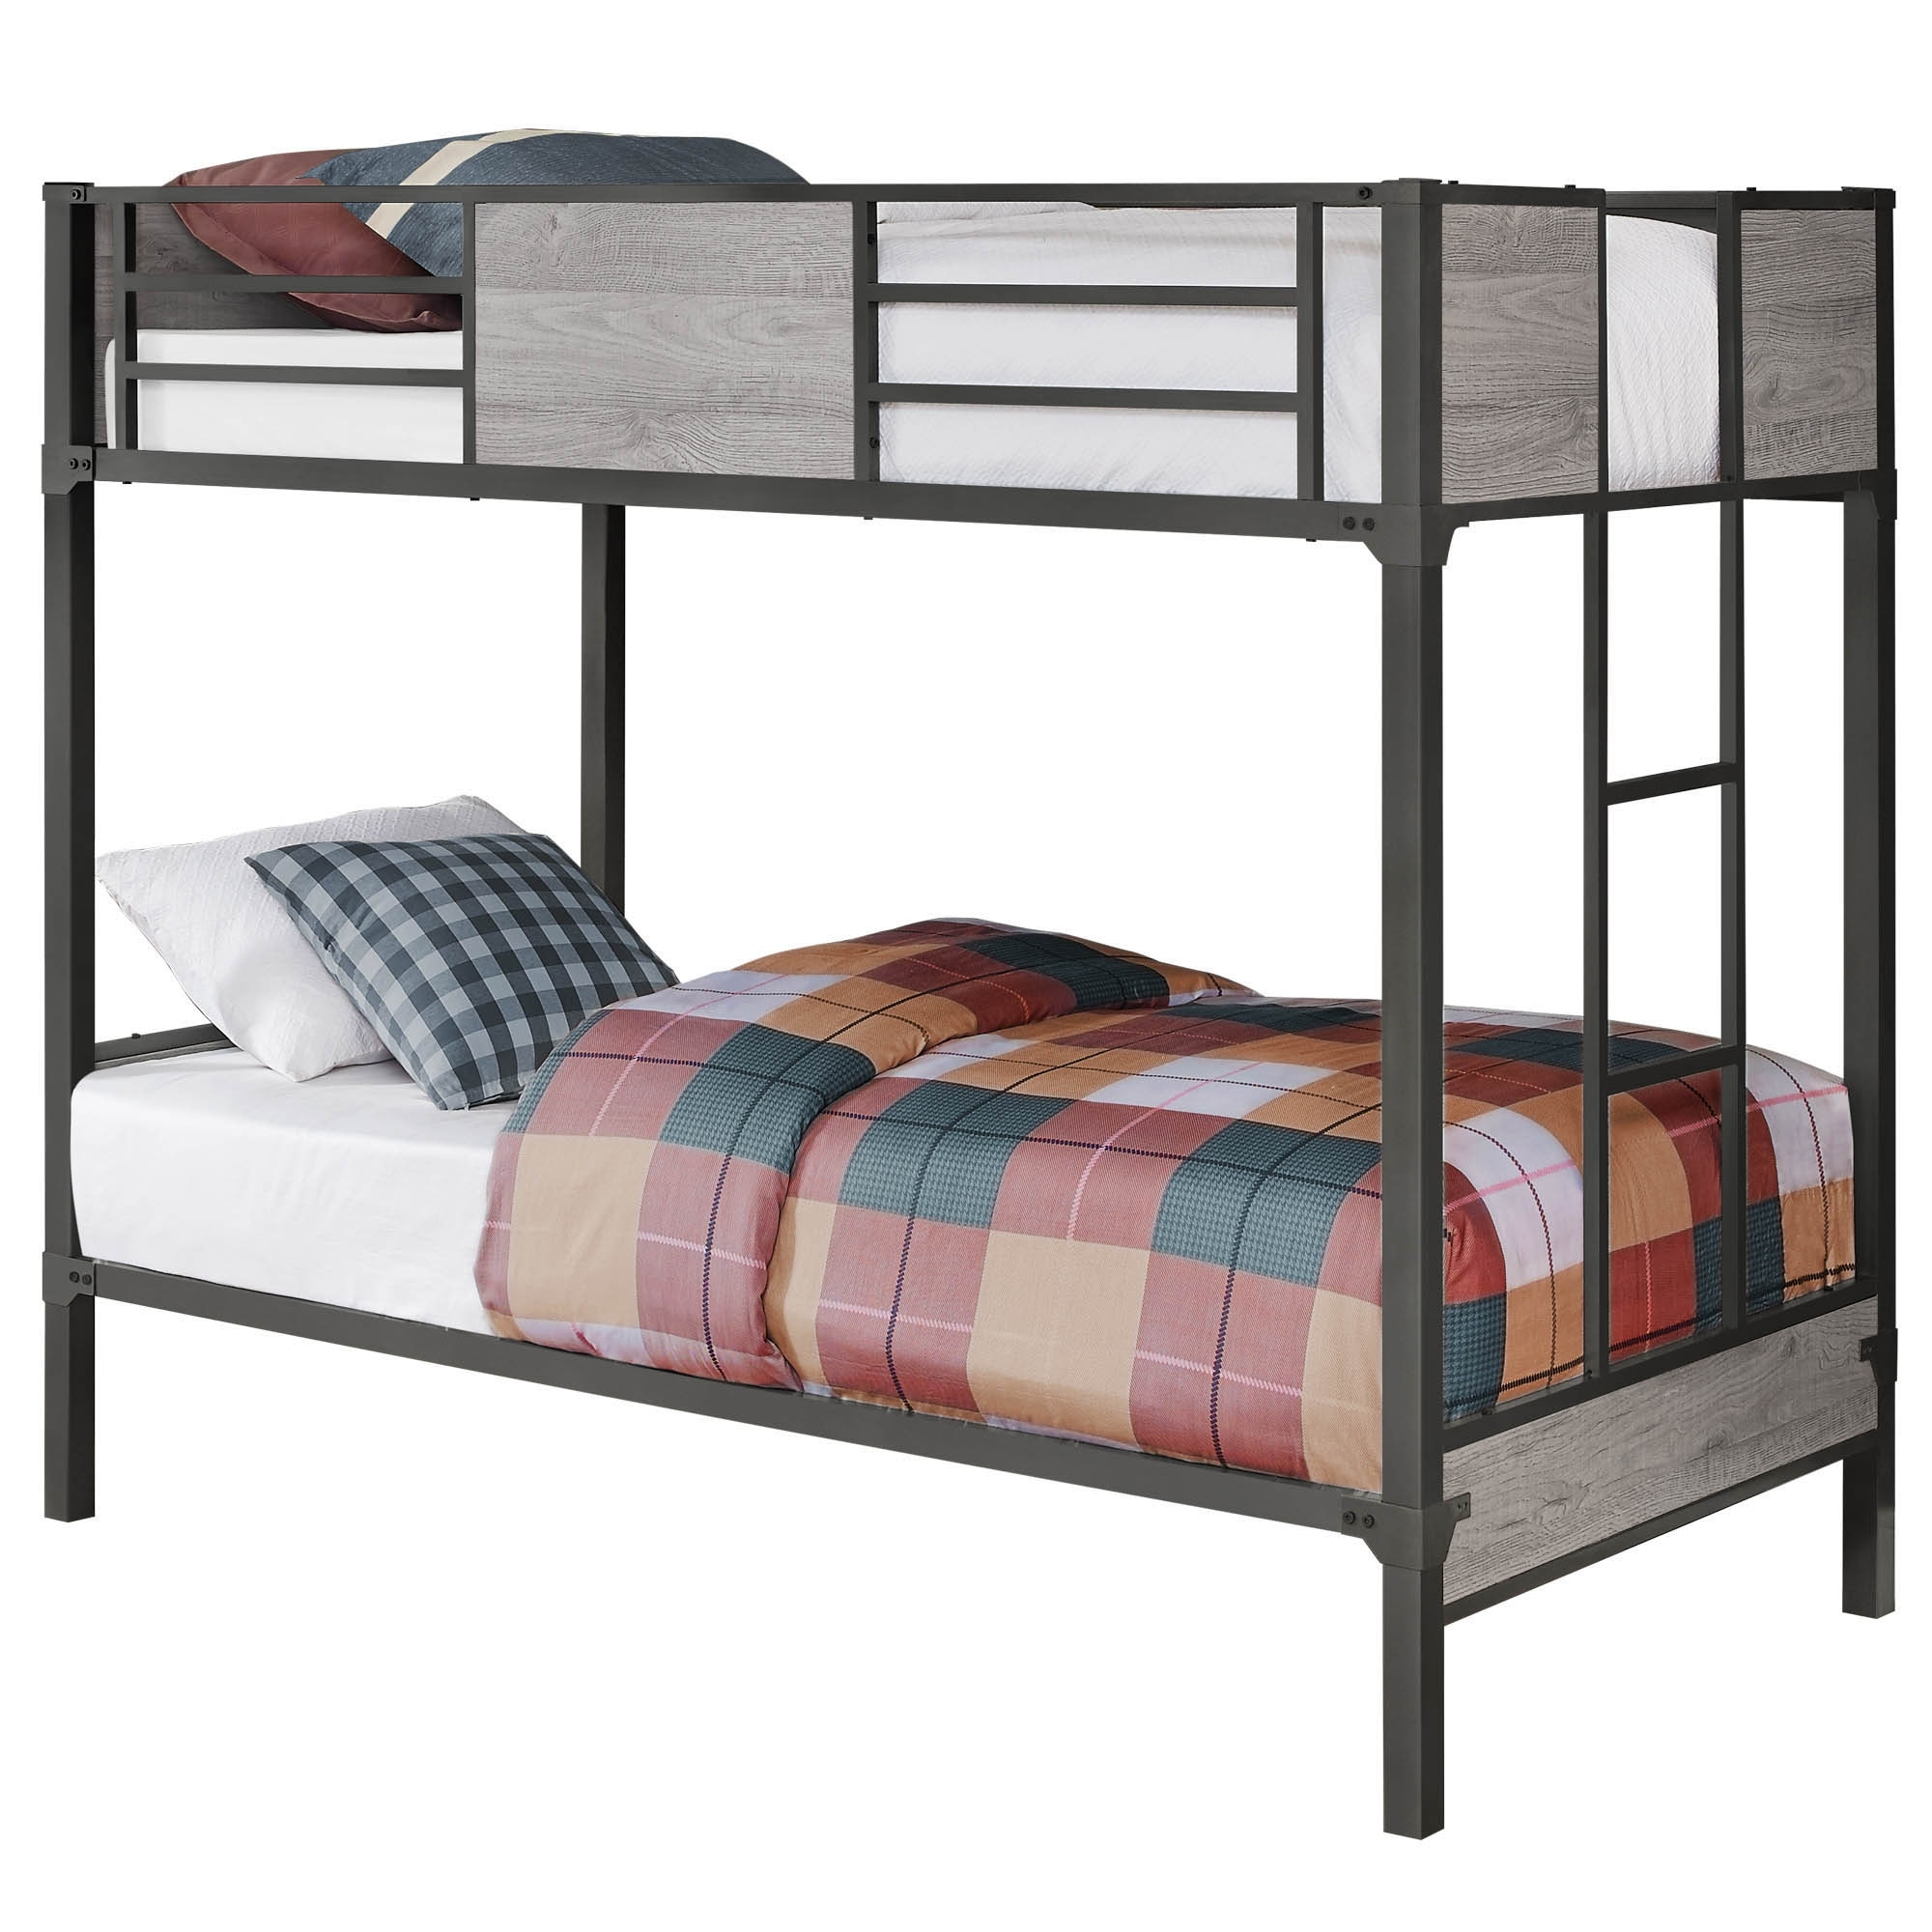 Offex Contemporary Bunk Bed Twin Twin Size Grey Dark Grey Metal Overstock 31484172